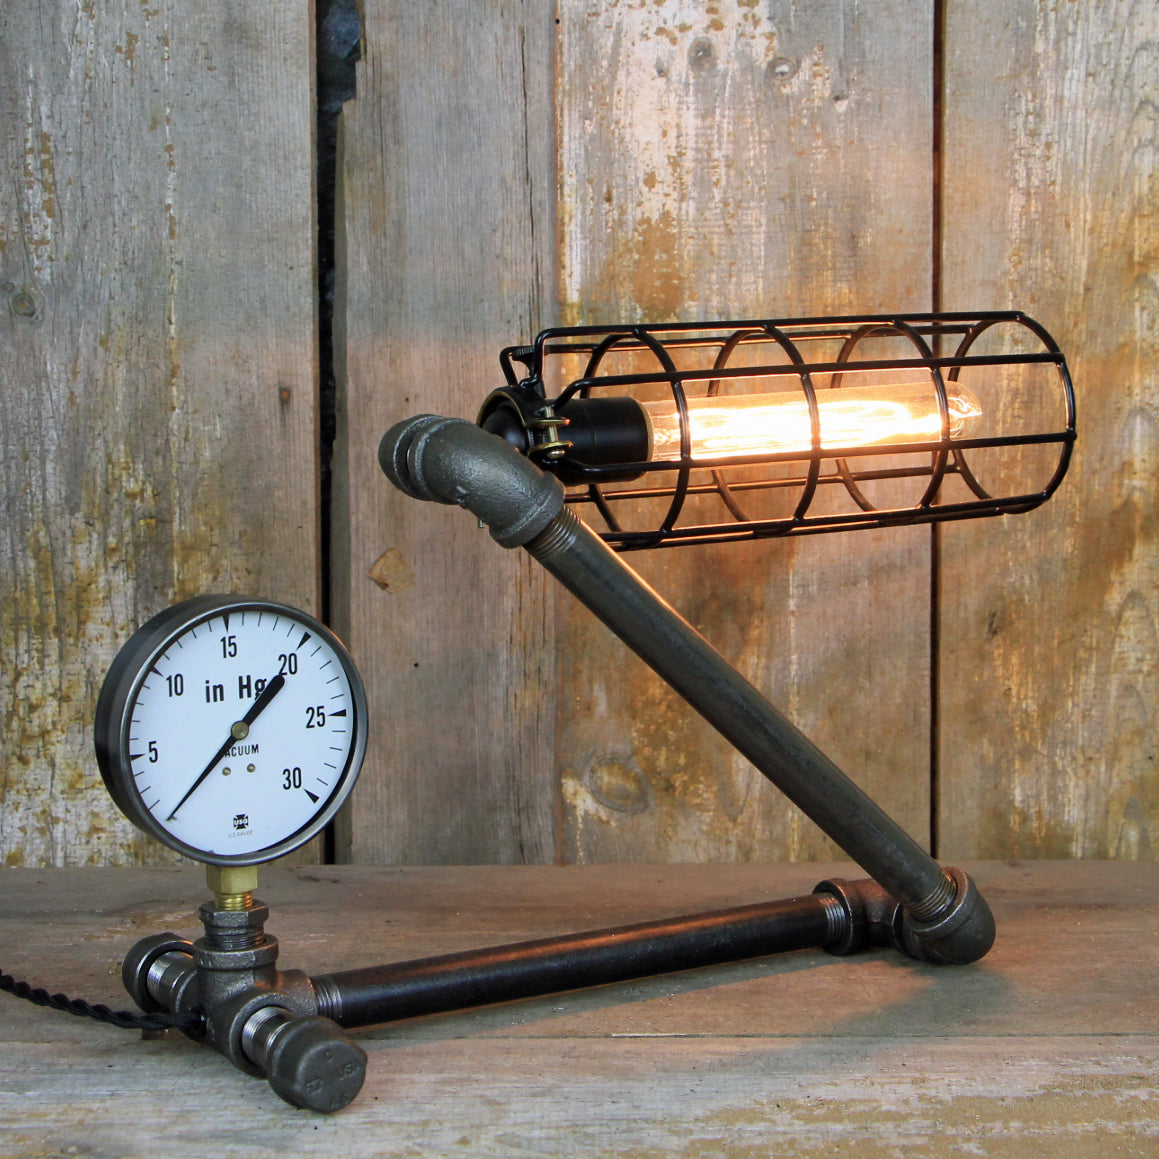 Steampunk Table Lamp with a Sleek Industrial Design #142 - The Lighting Works